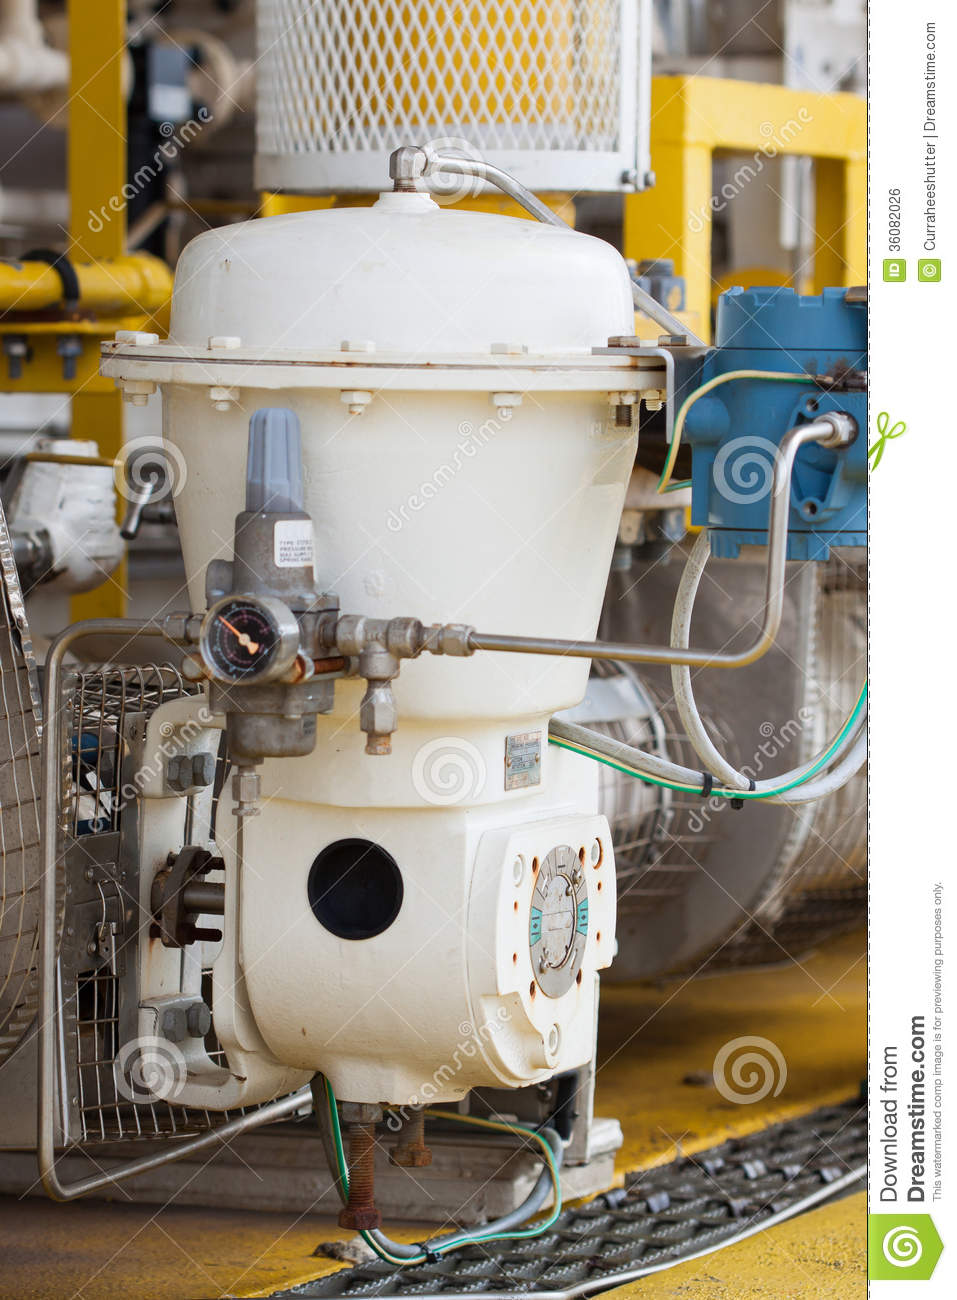 Control Valve Or Pressure Regulator In Oil And Gas Process Stock